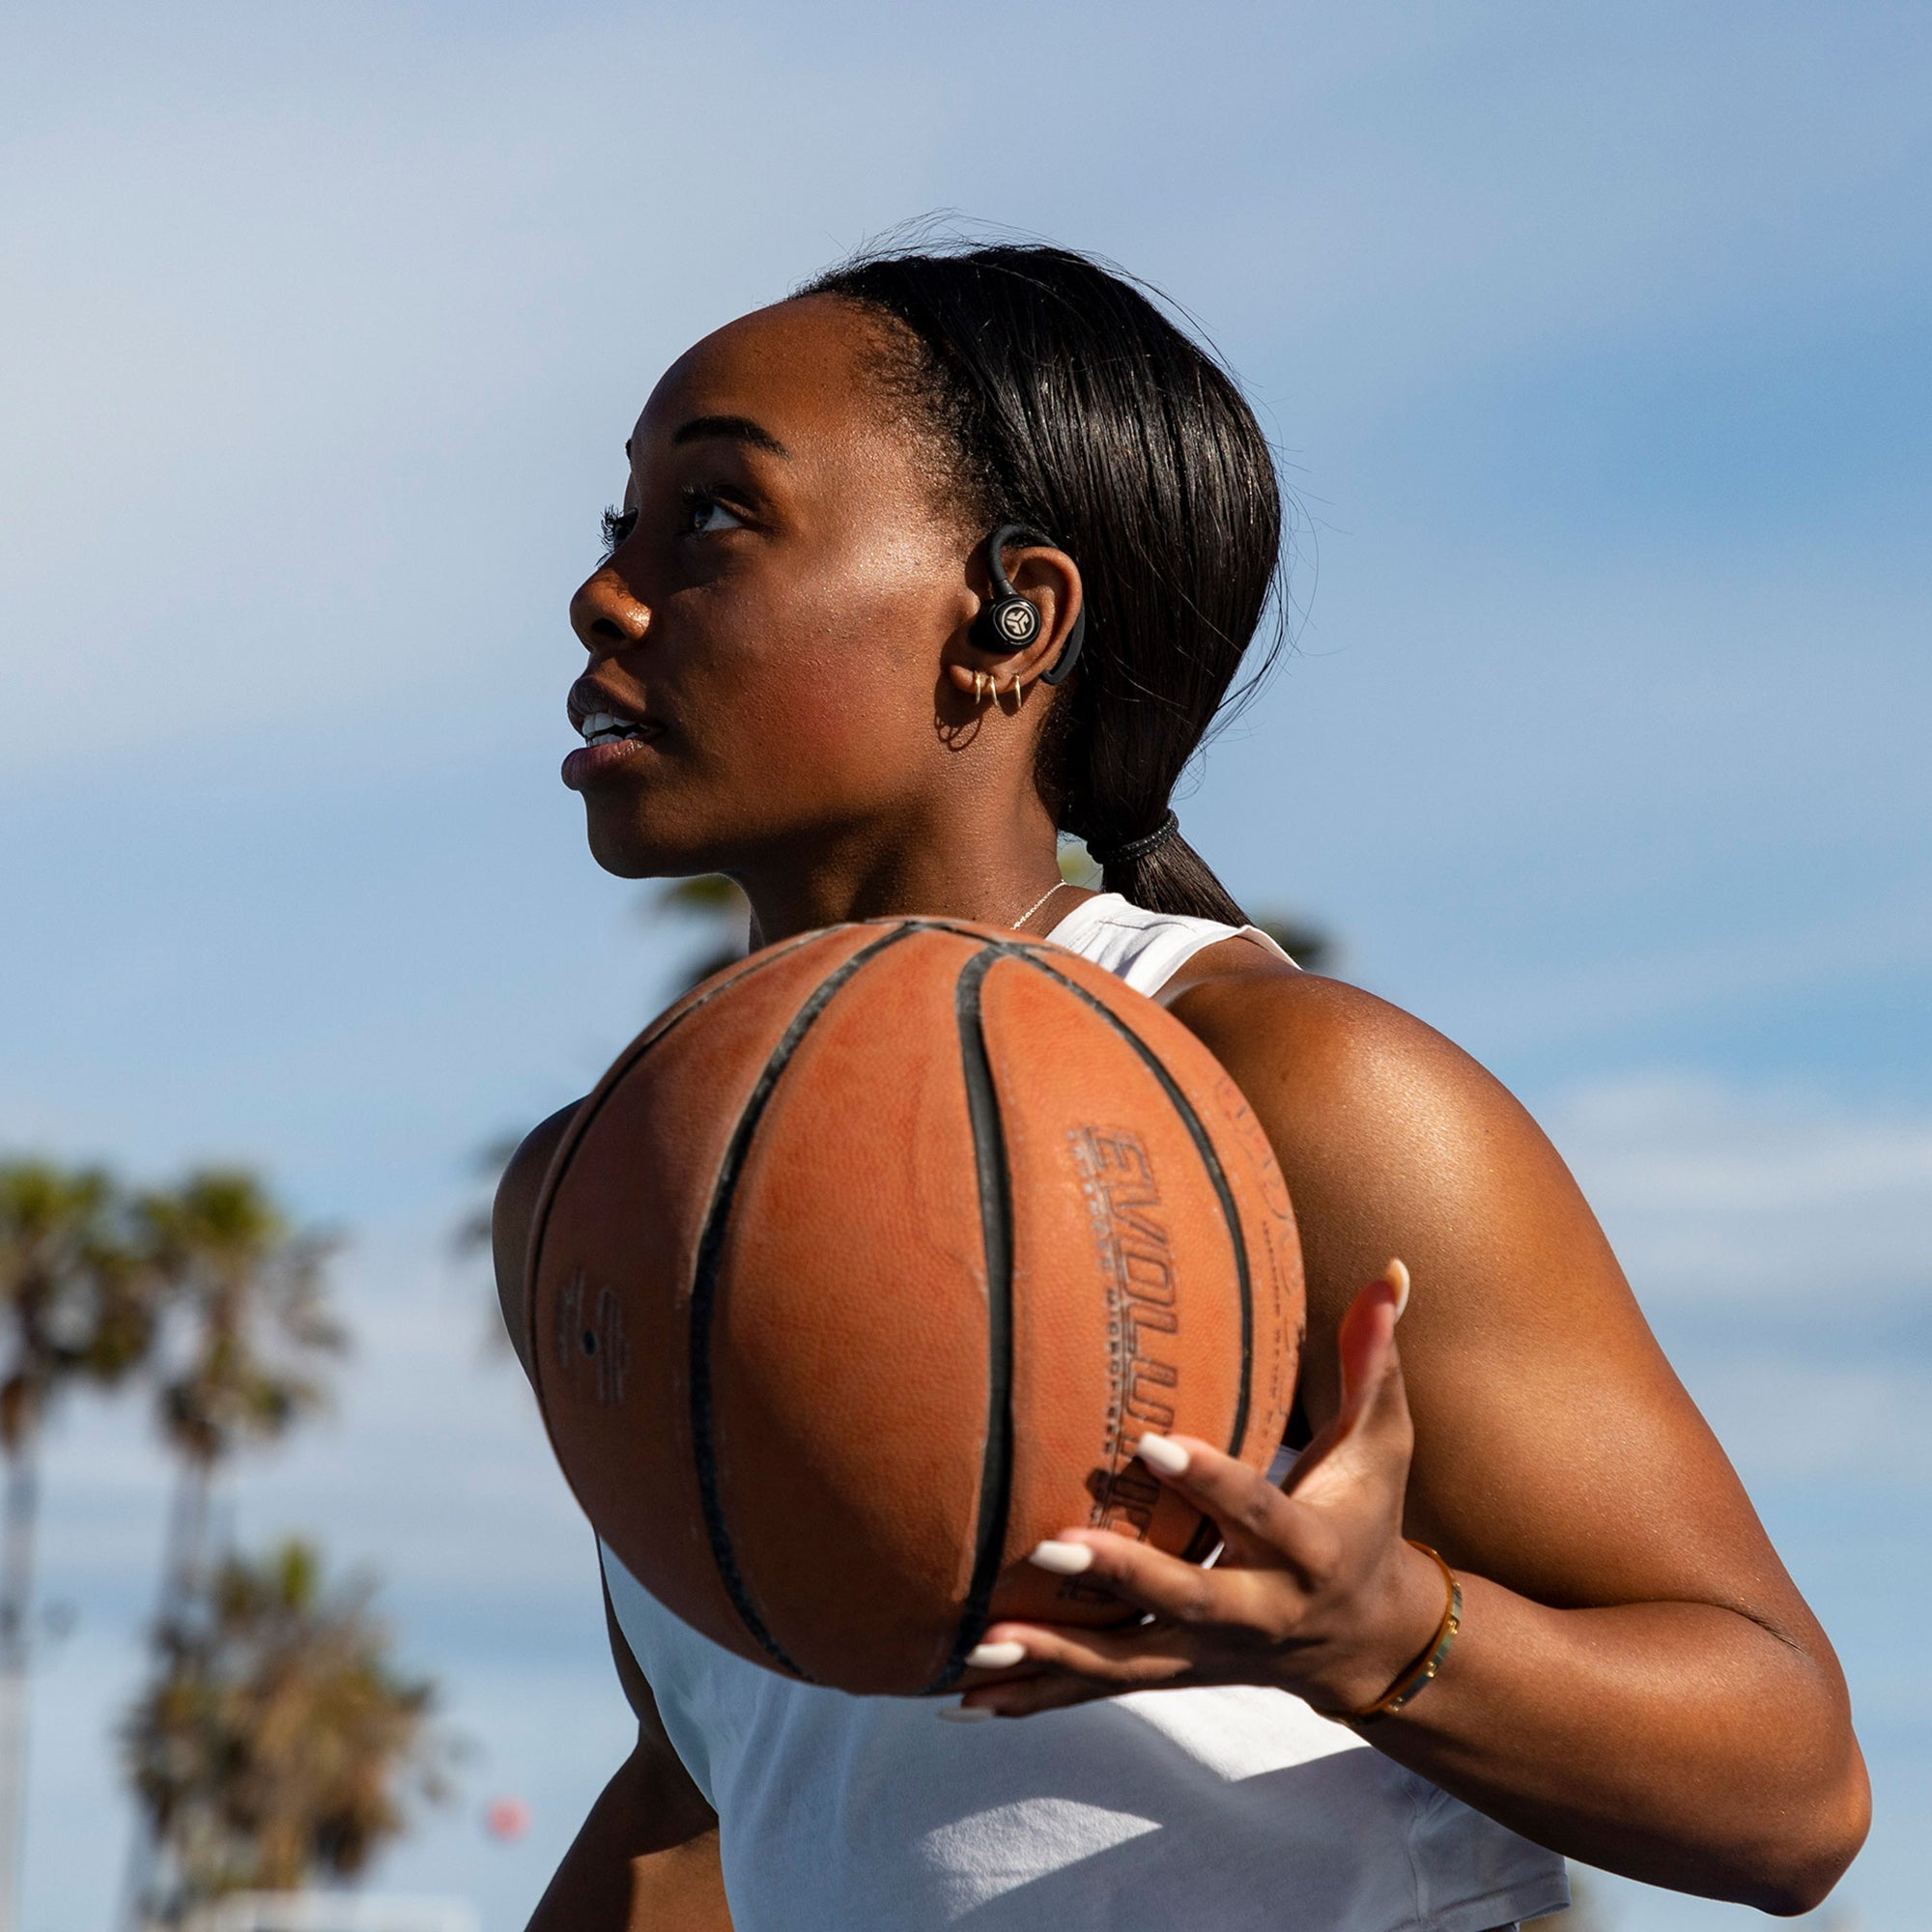 Femme, basketball jouant, porter Epic Air Sport True Wireless Ecouteurs